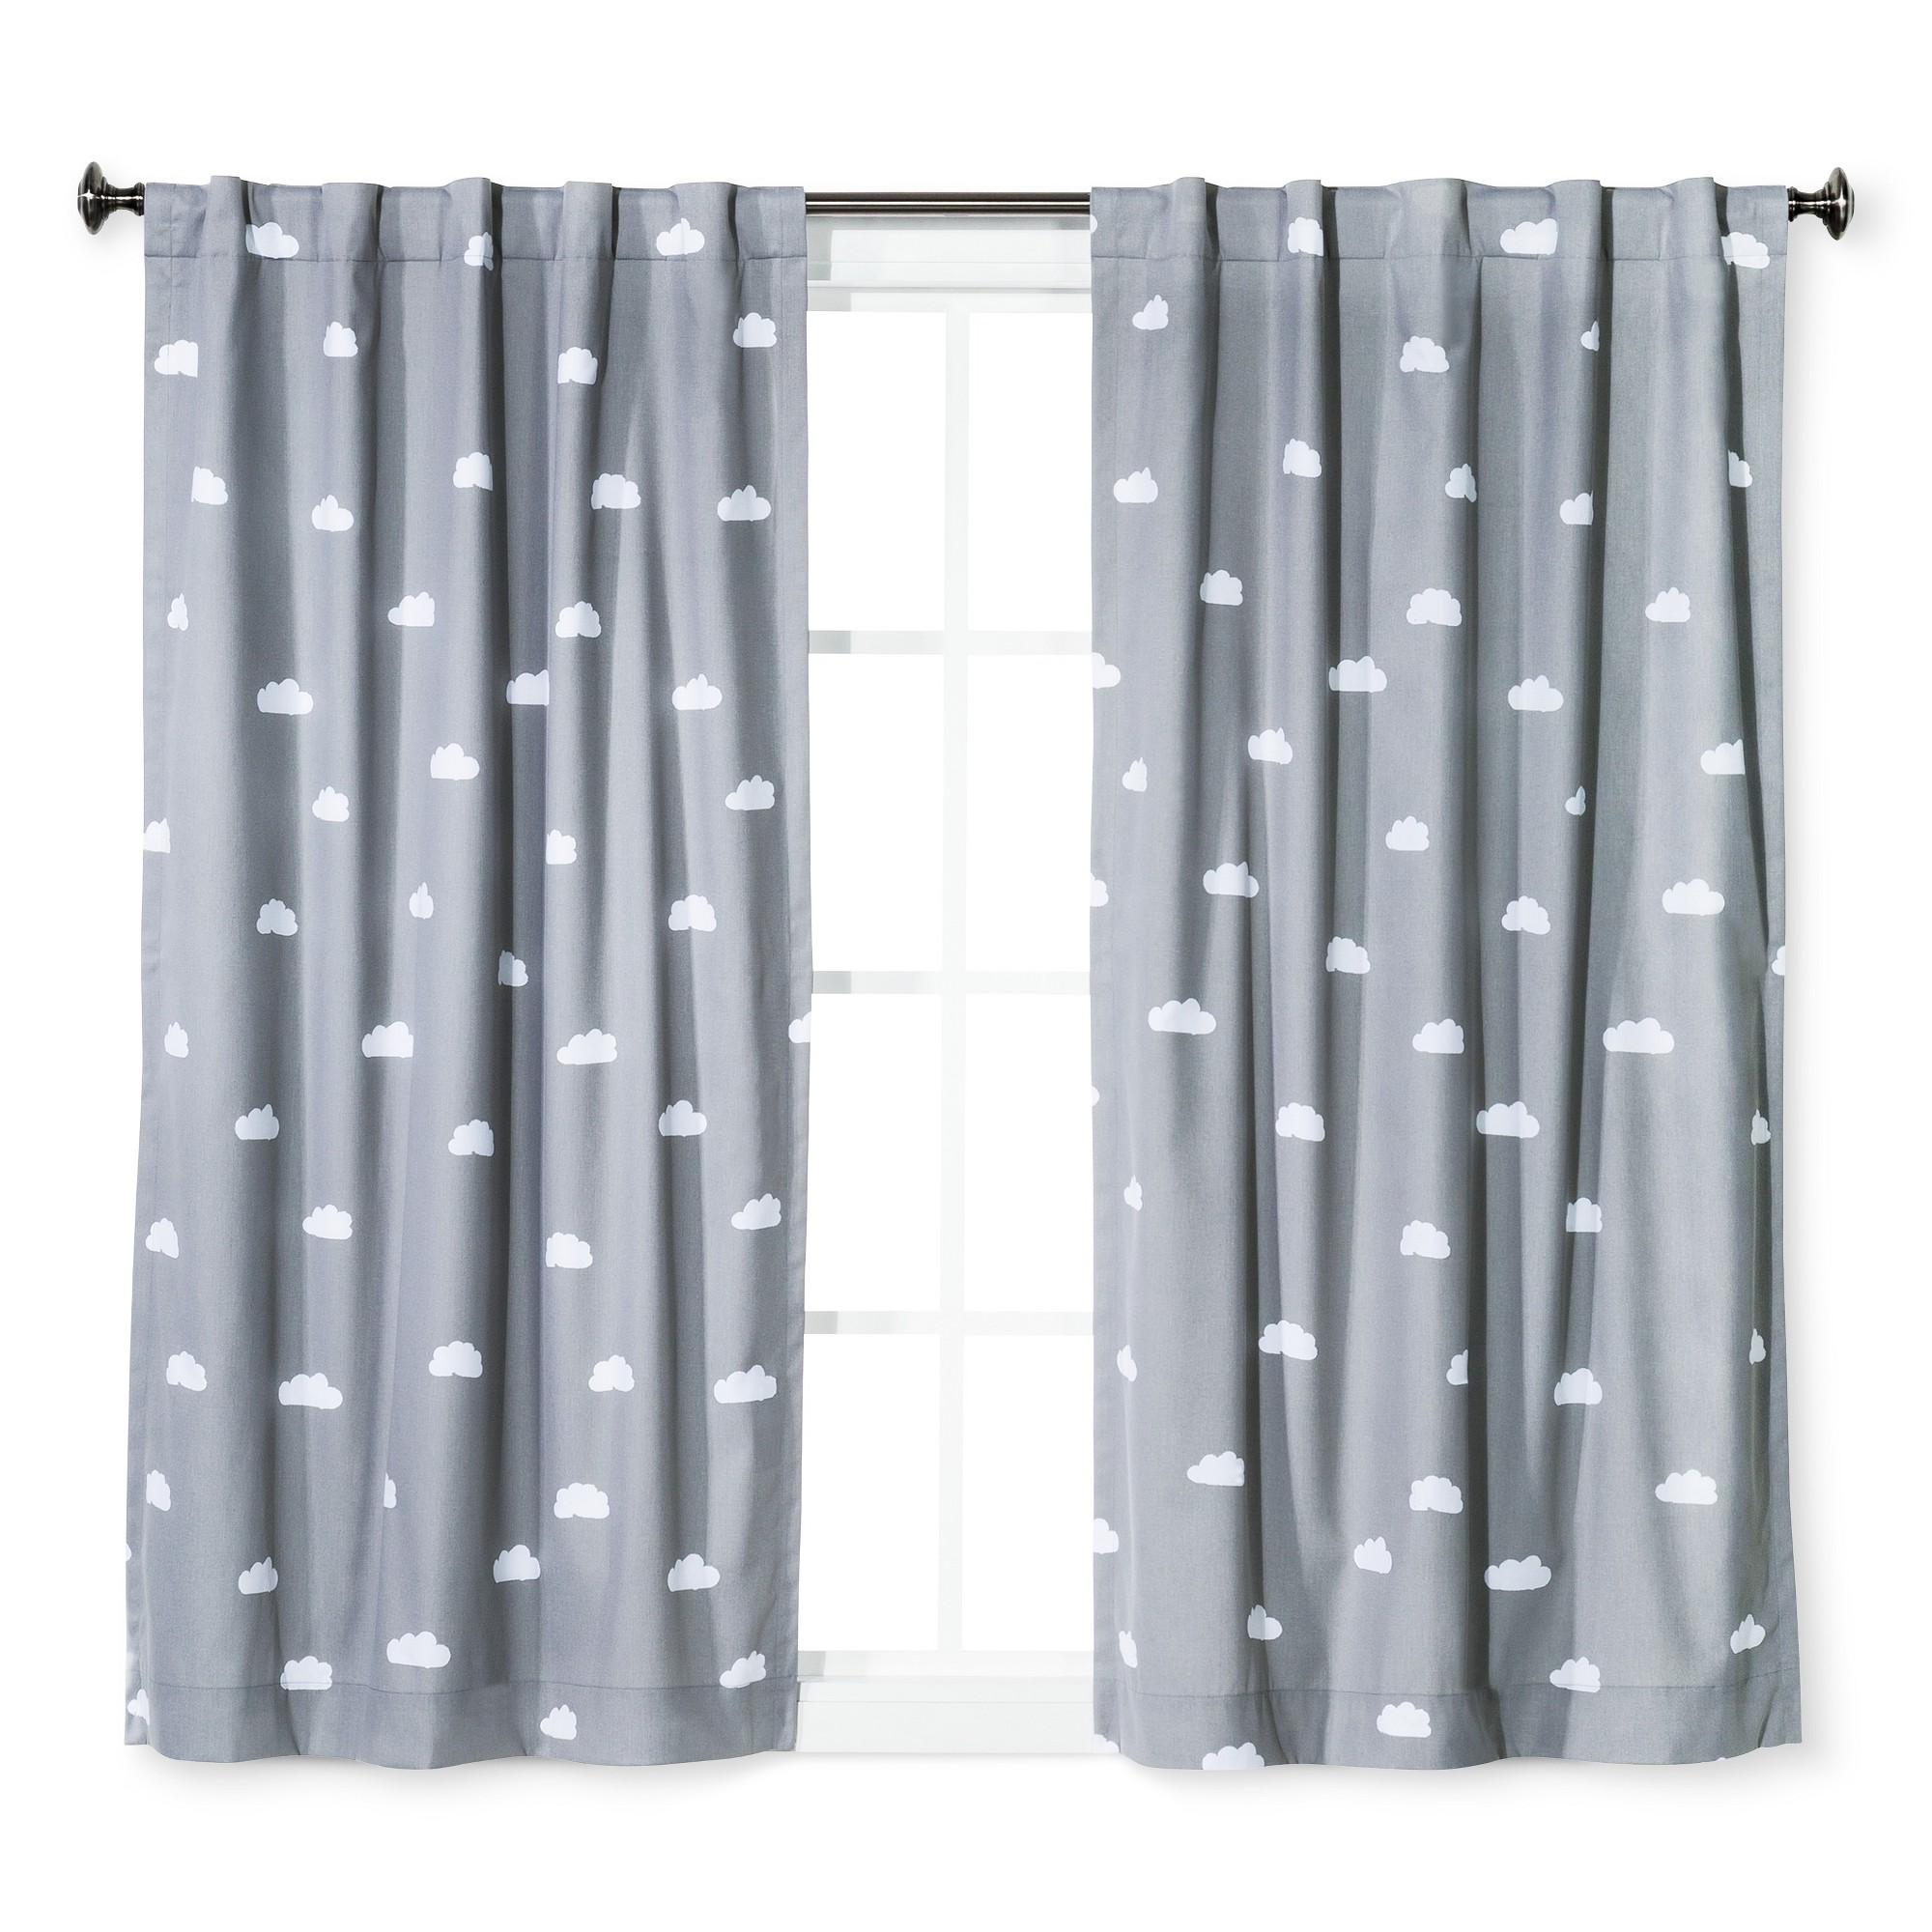 Cloud Print Twill Blackout Curtain Panel Light Gray